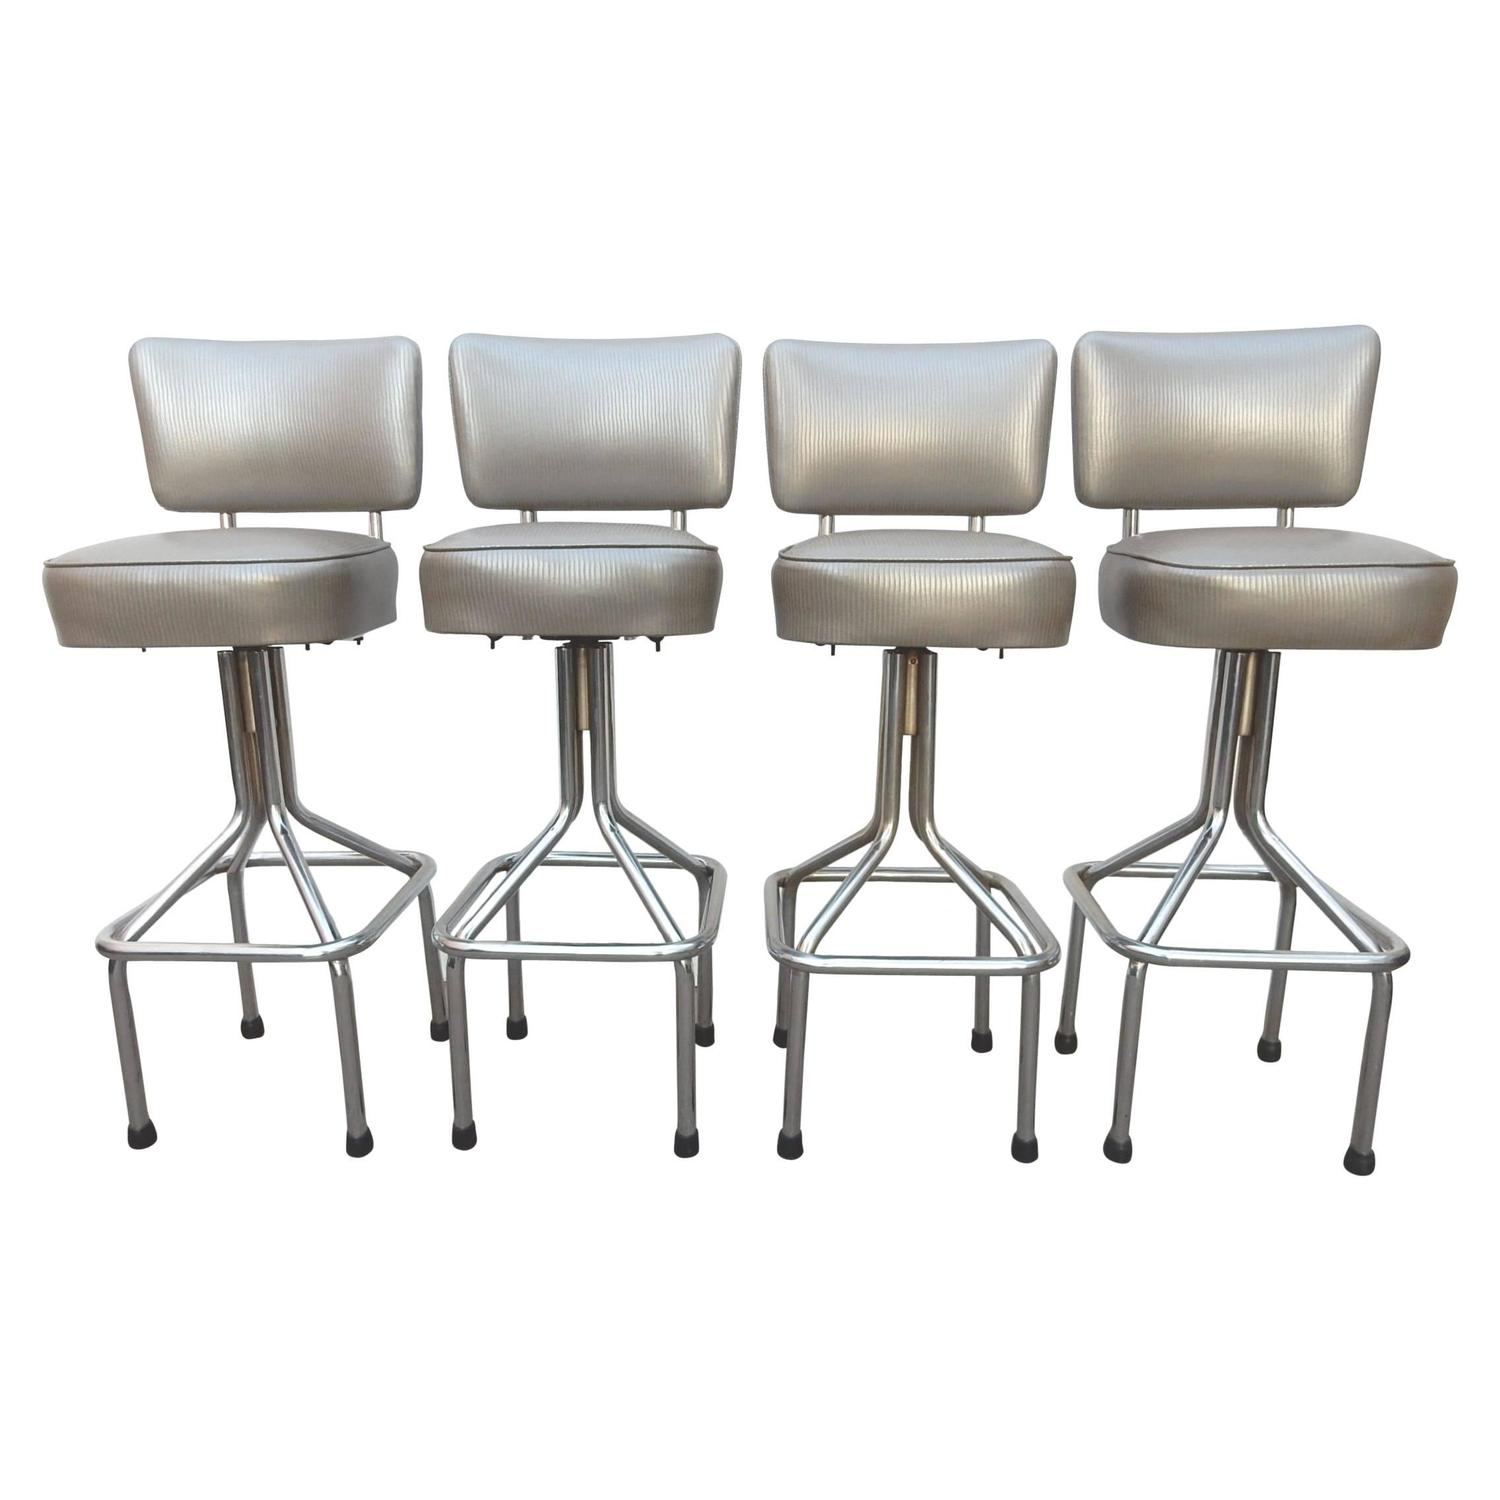 Mid Century Modern 1950s Chrome Tall Swivel Bar Stools In